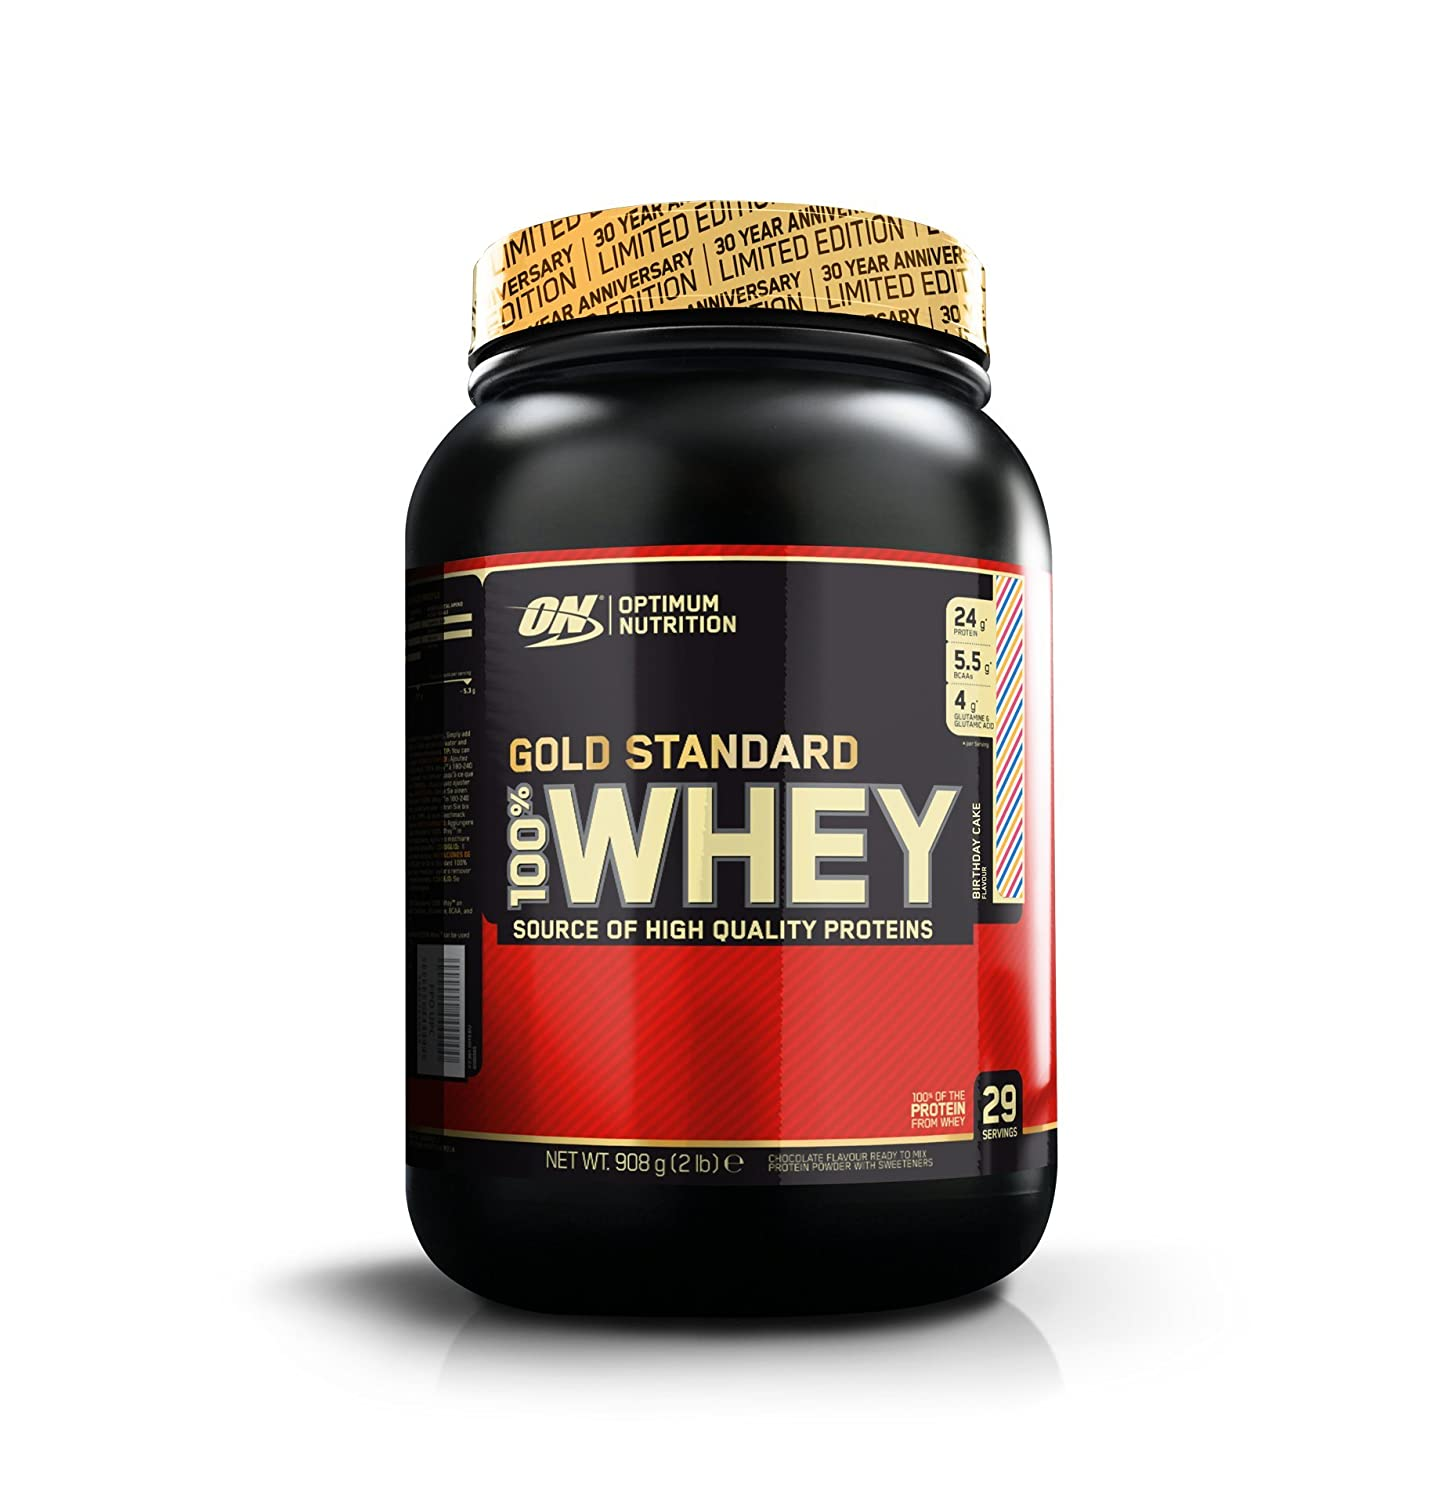 Optimum Nutrition Gold Standard Whey - 908g, 908 g: Amazon.es: Salud y cuidado personal